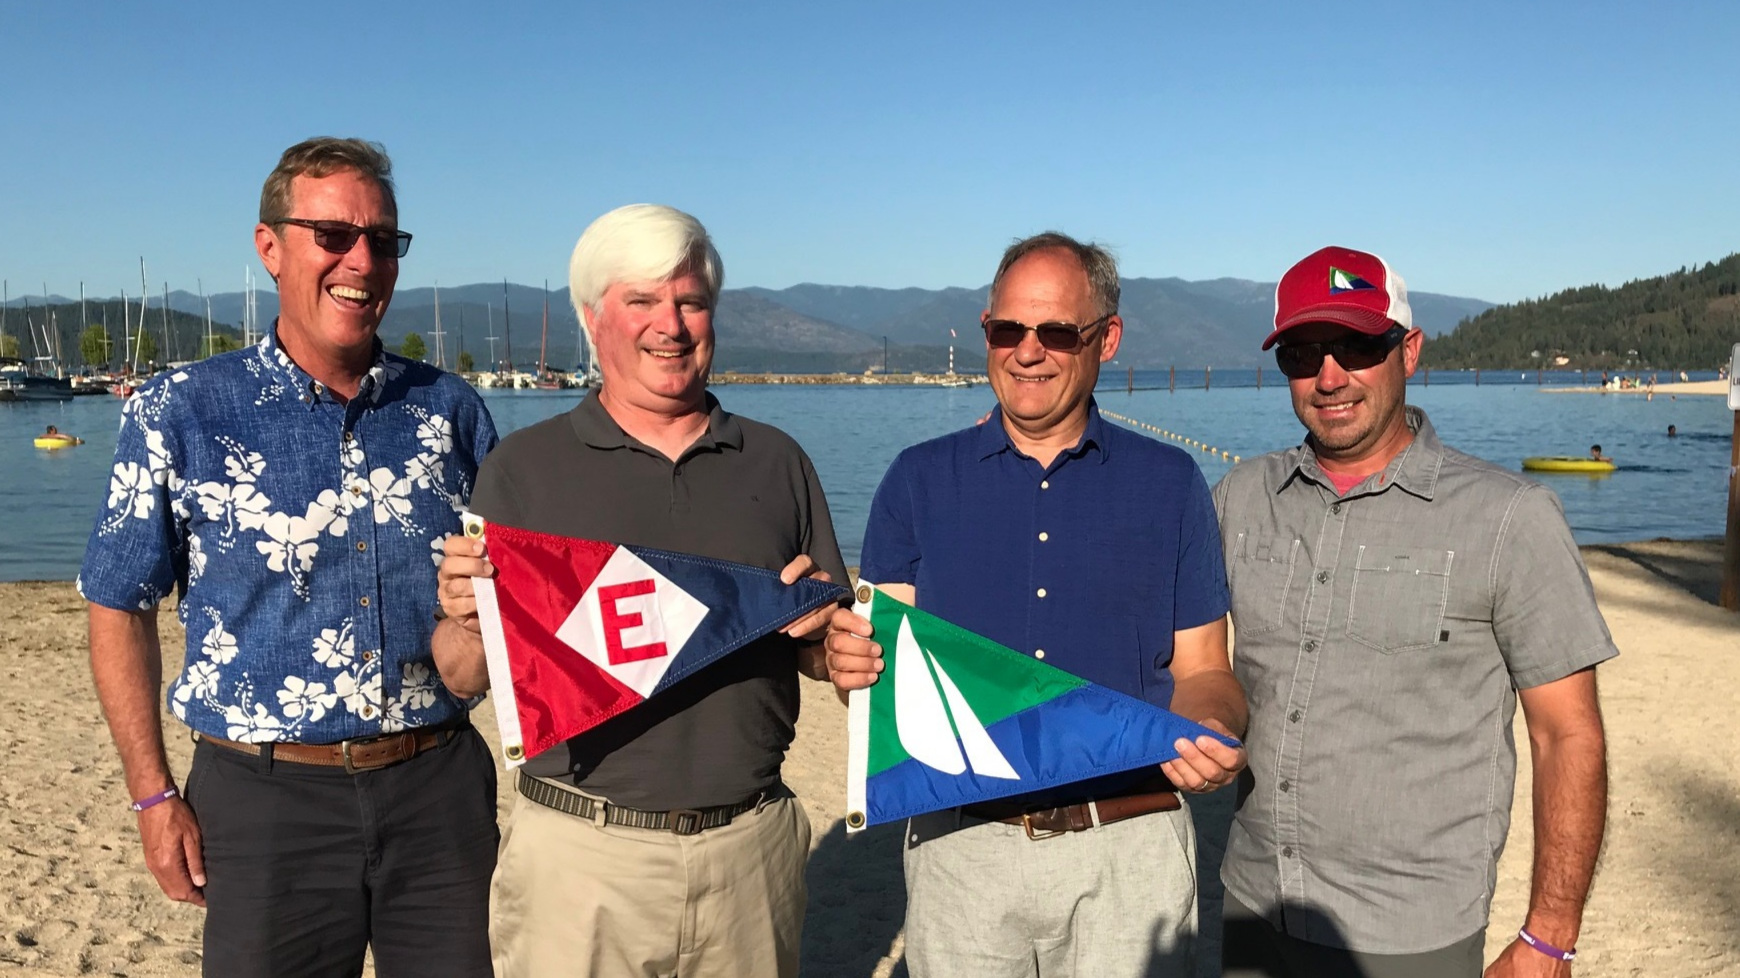 Club Manager Rich Aaring exchanges burgee with Past, Current and Vice Commodores of Sandpoint Sailing Association in Sandpoint, ID